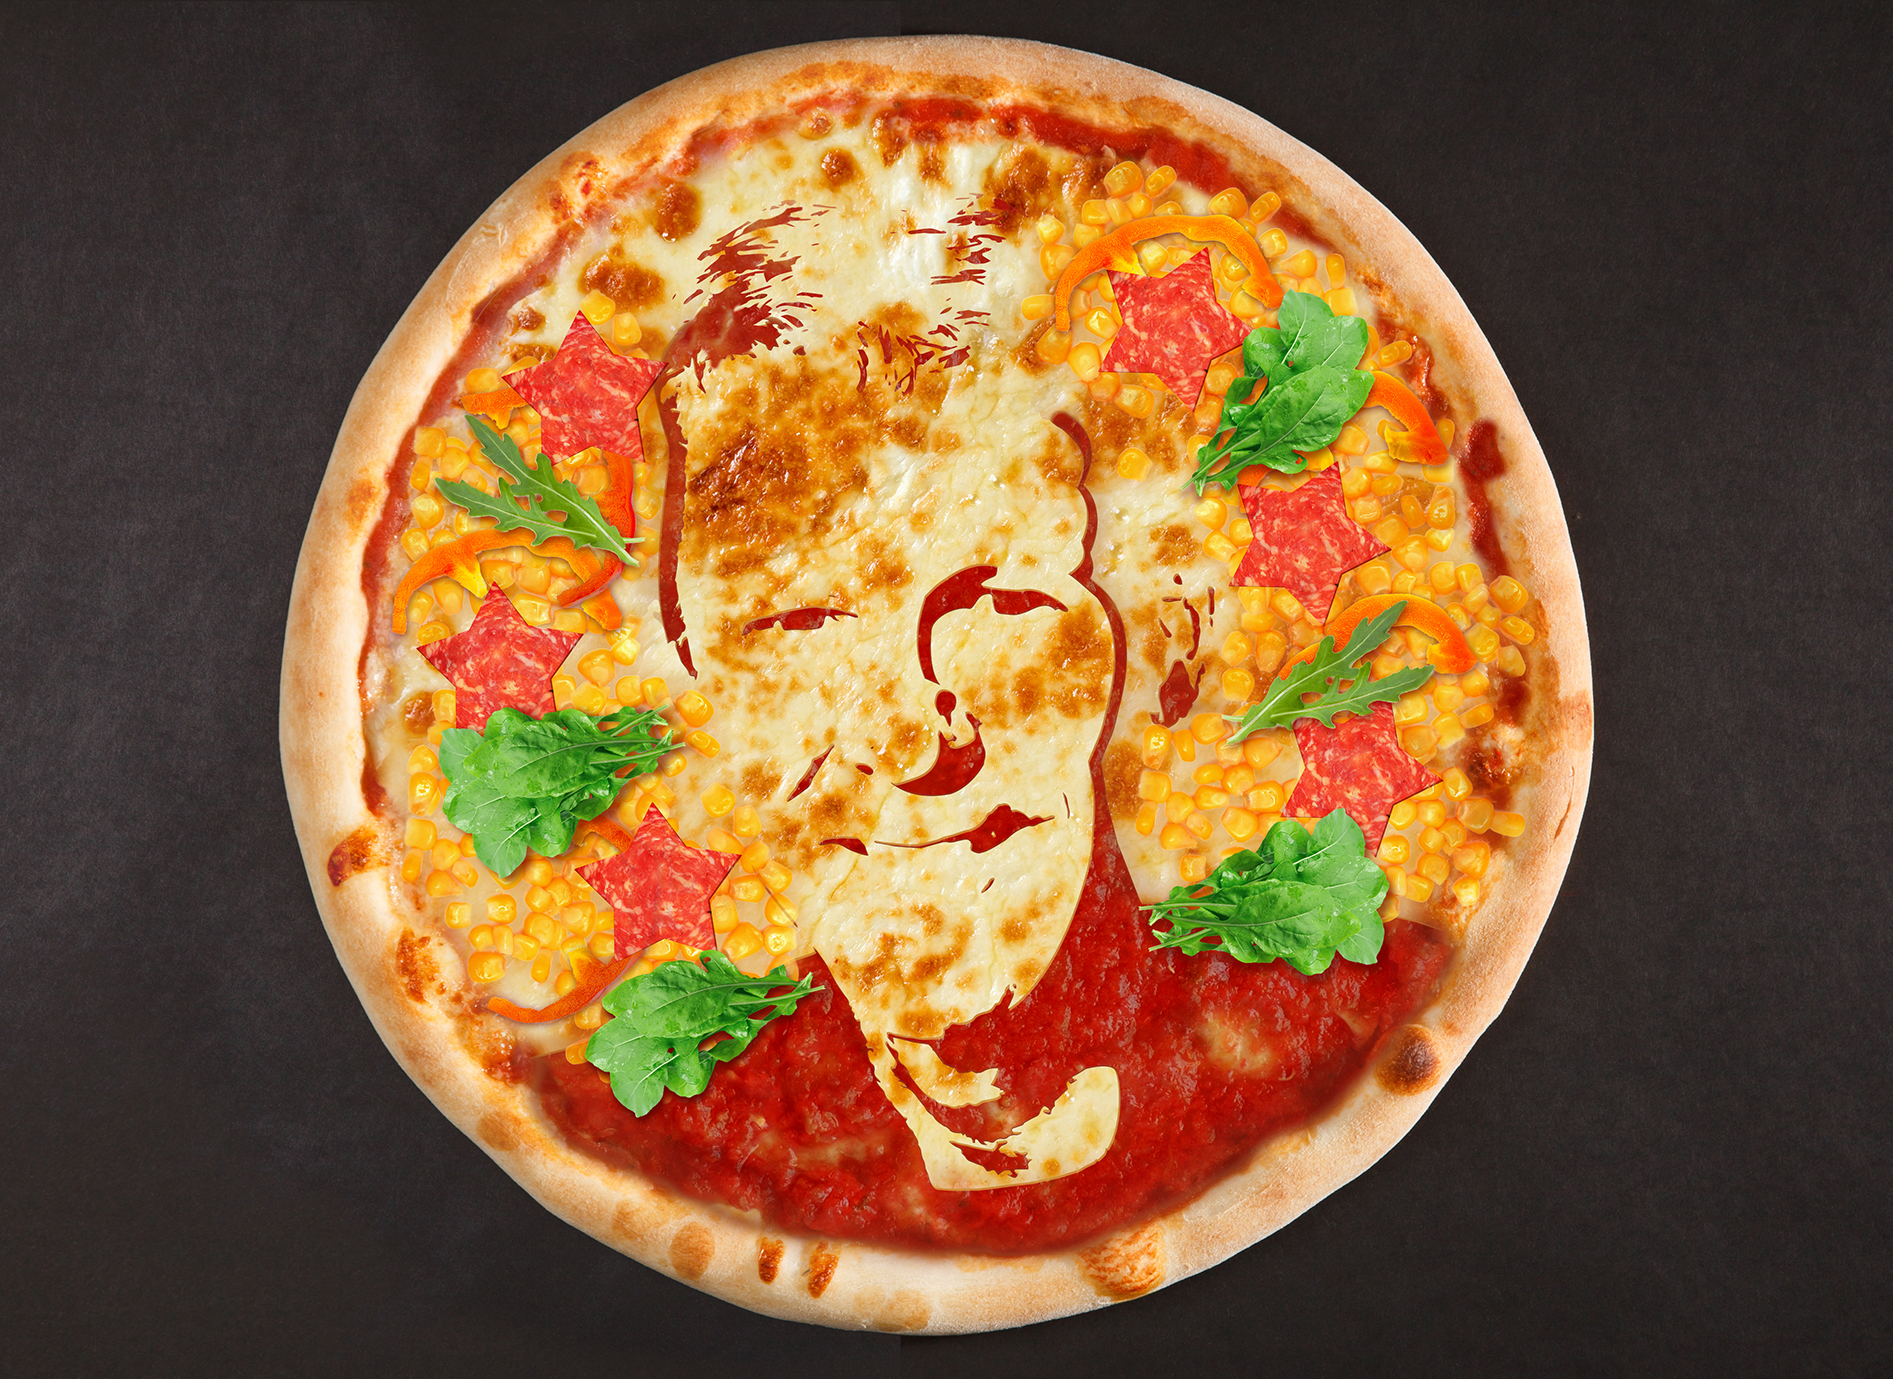 0608_Tim-Peake-Pizza